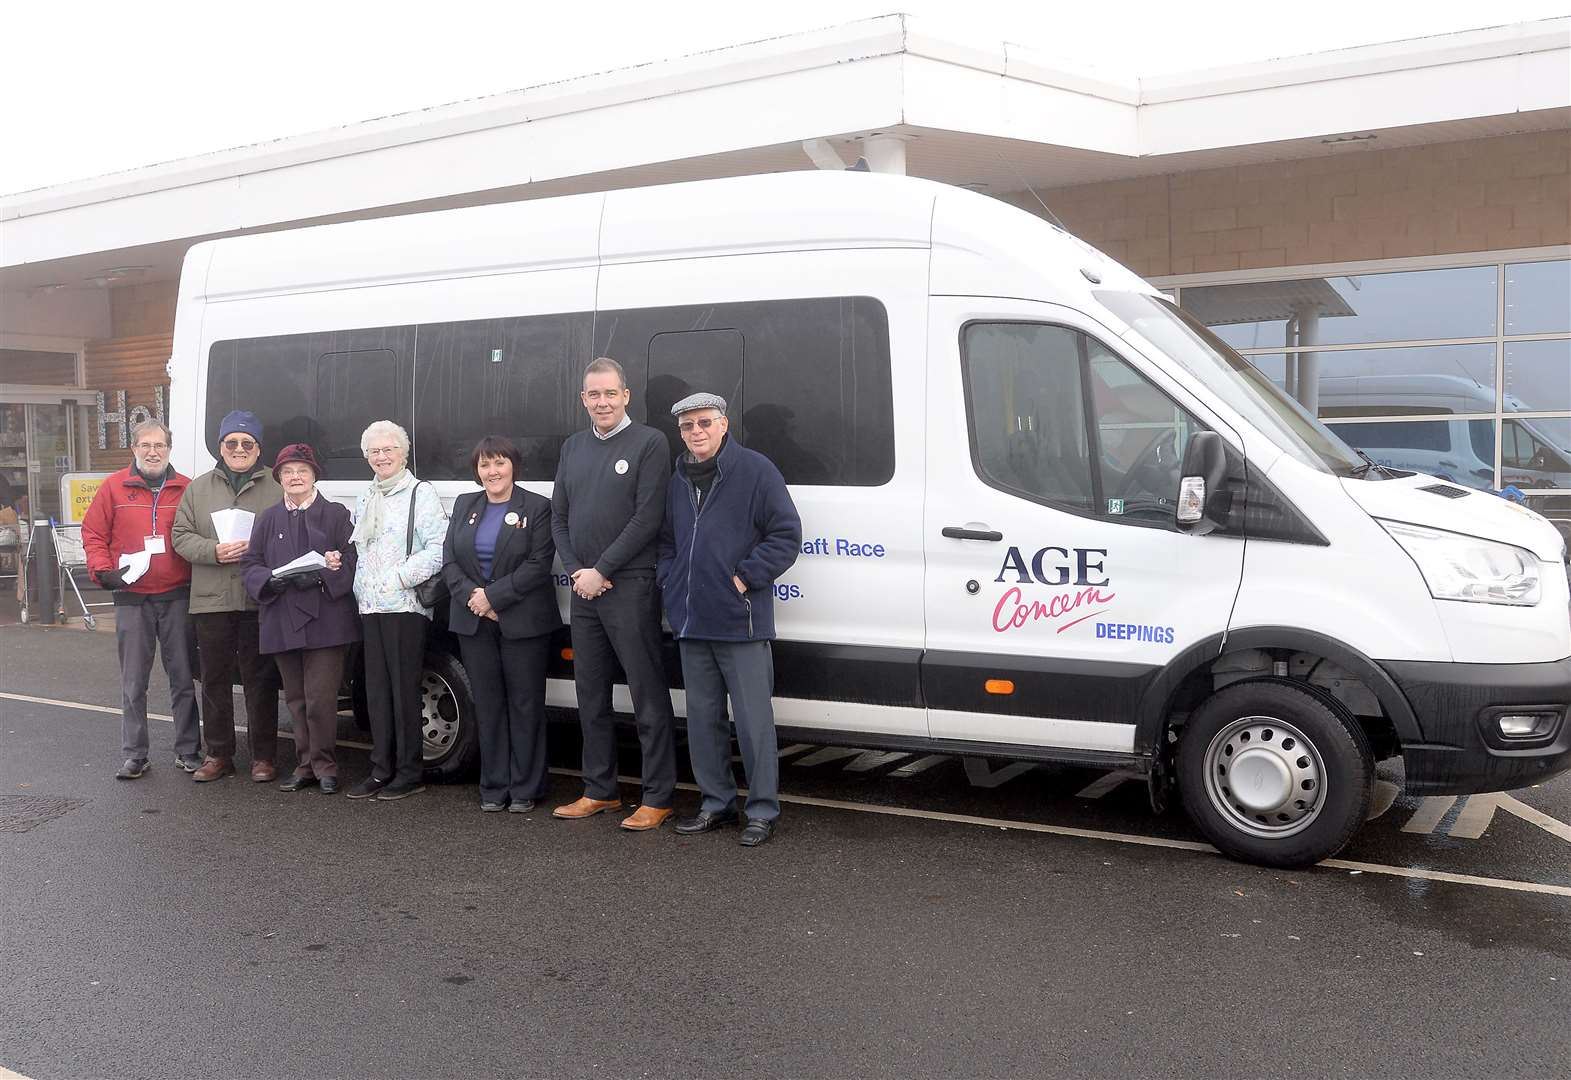 Second bus to help support Deepings elderly